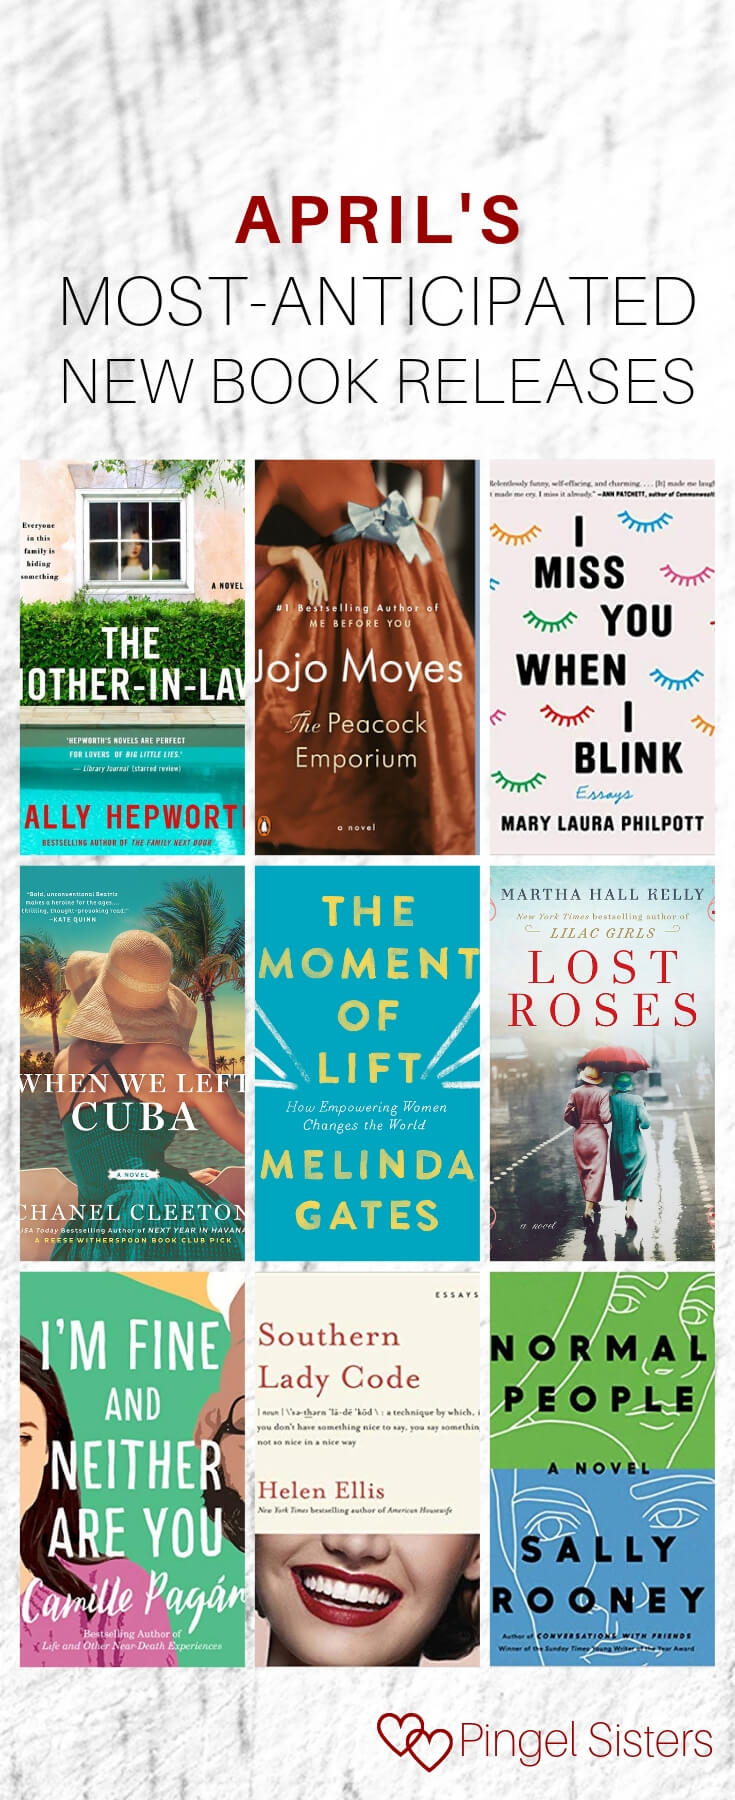 April's most anticipated new book releases. If you're looking for book suggestions, look no further! We have all the books to read now, including these hot new book releases for April 2019.